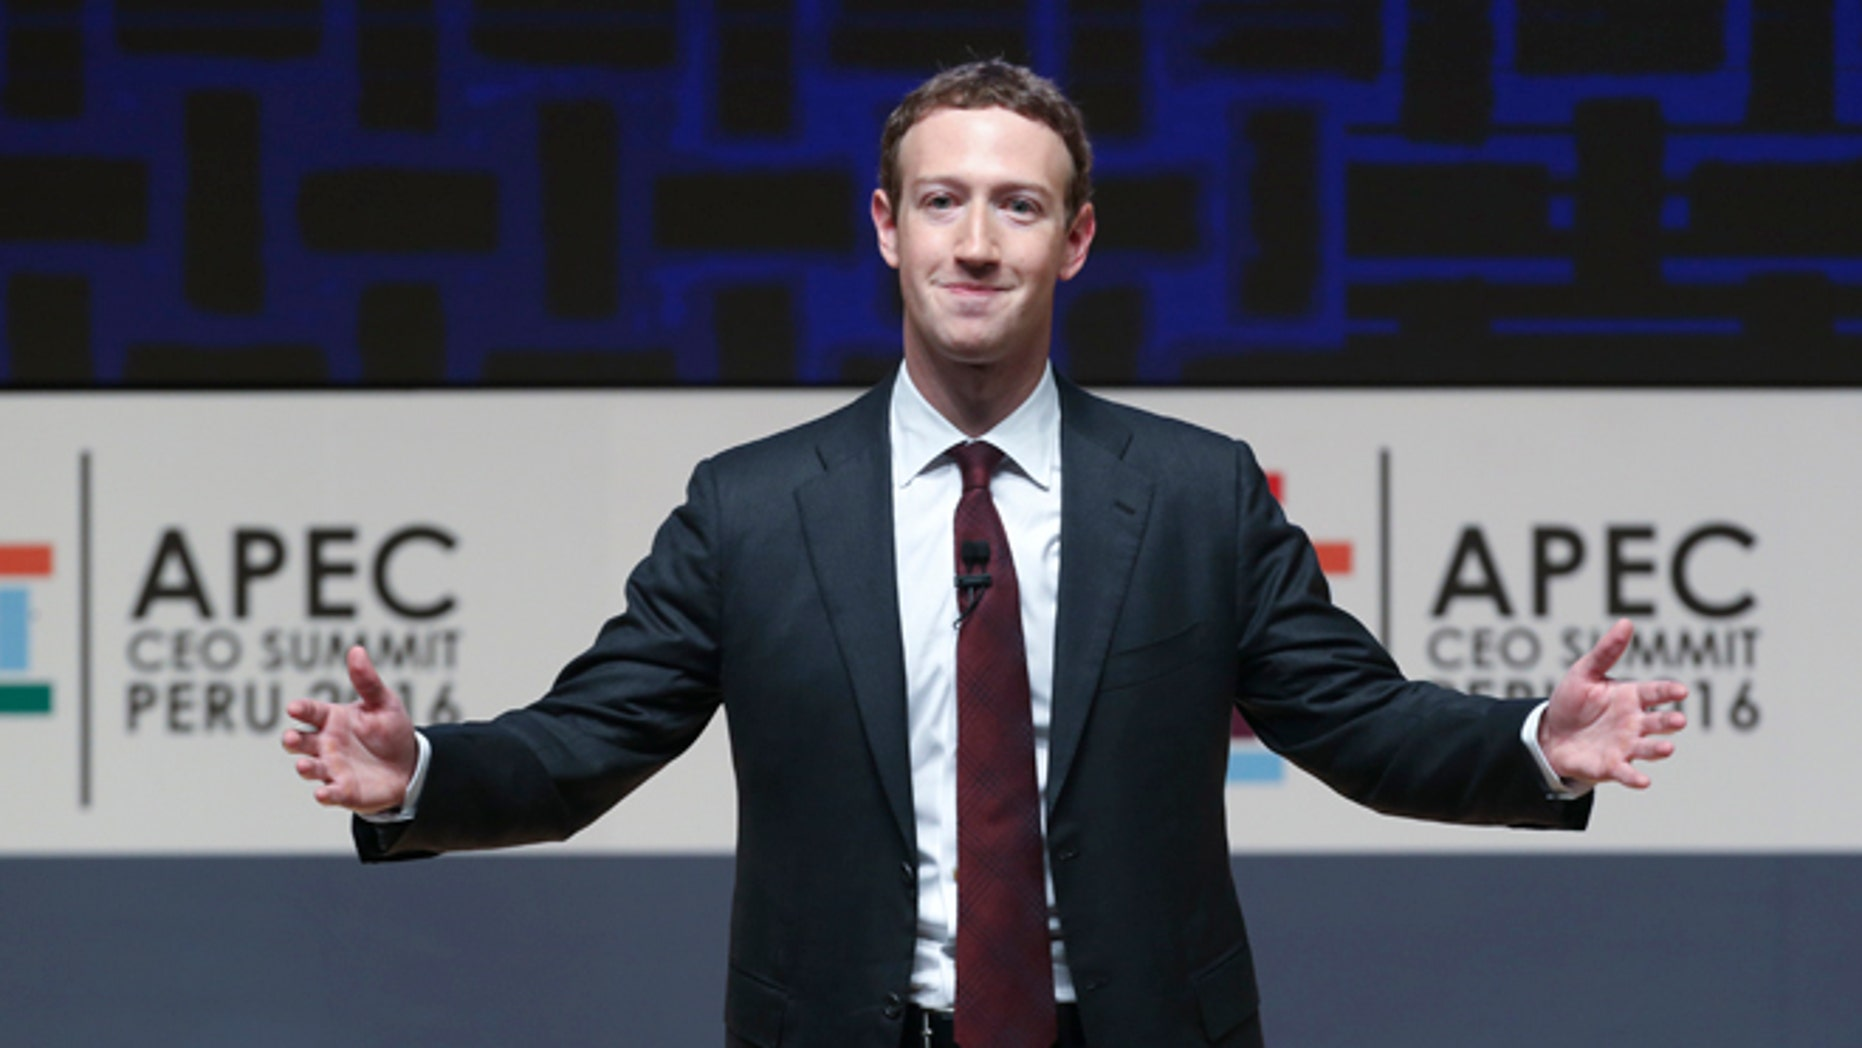 "FILE - In this Nov. 19, 2016, file photo, Mark Zuckerberg, chairman and CEO of Facebook, speaks at the CEO summit during the annual Asia Pacific Economic Cooperation (APEC) forum in Lima, Peru. Zuckerberg unveiled his new artificial intelligence assistant named ""Jarvis"" in a Facebook post on Dec. 19, 2016. (AP Photo/Esteban Felix, File)"